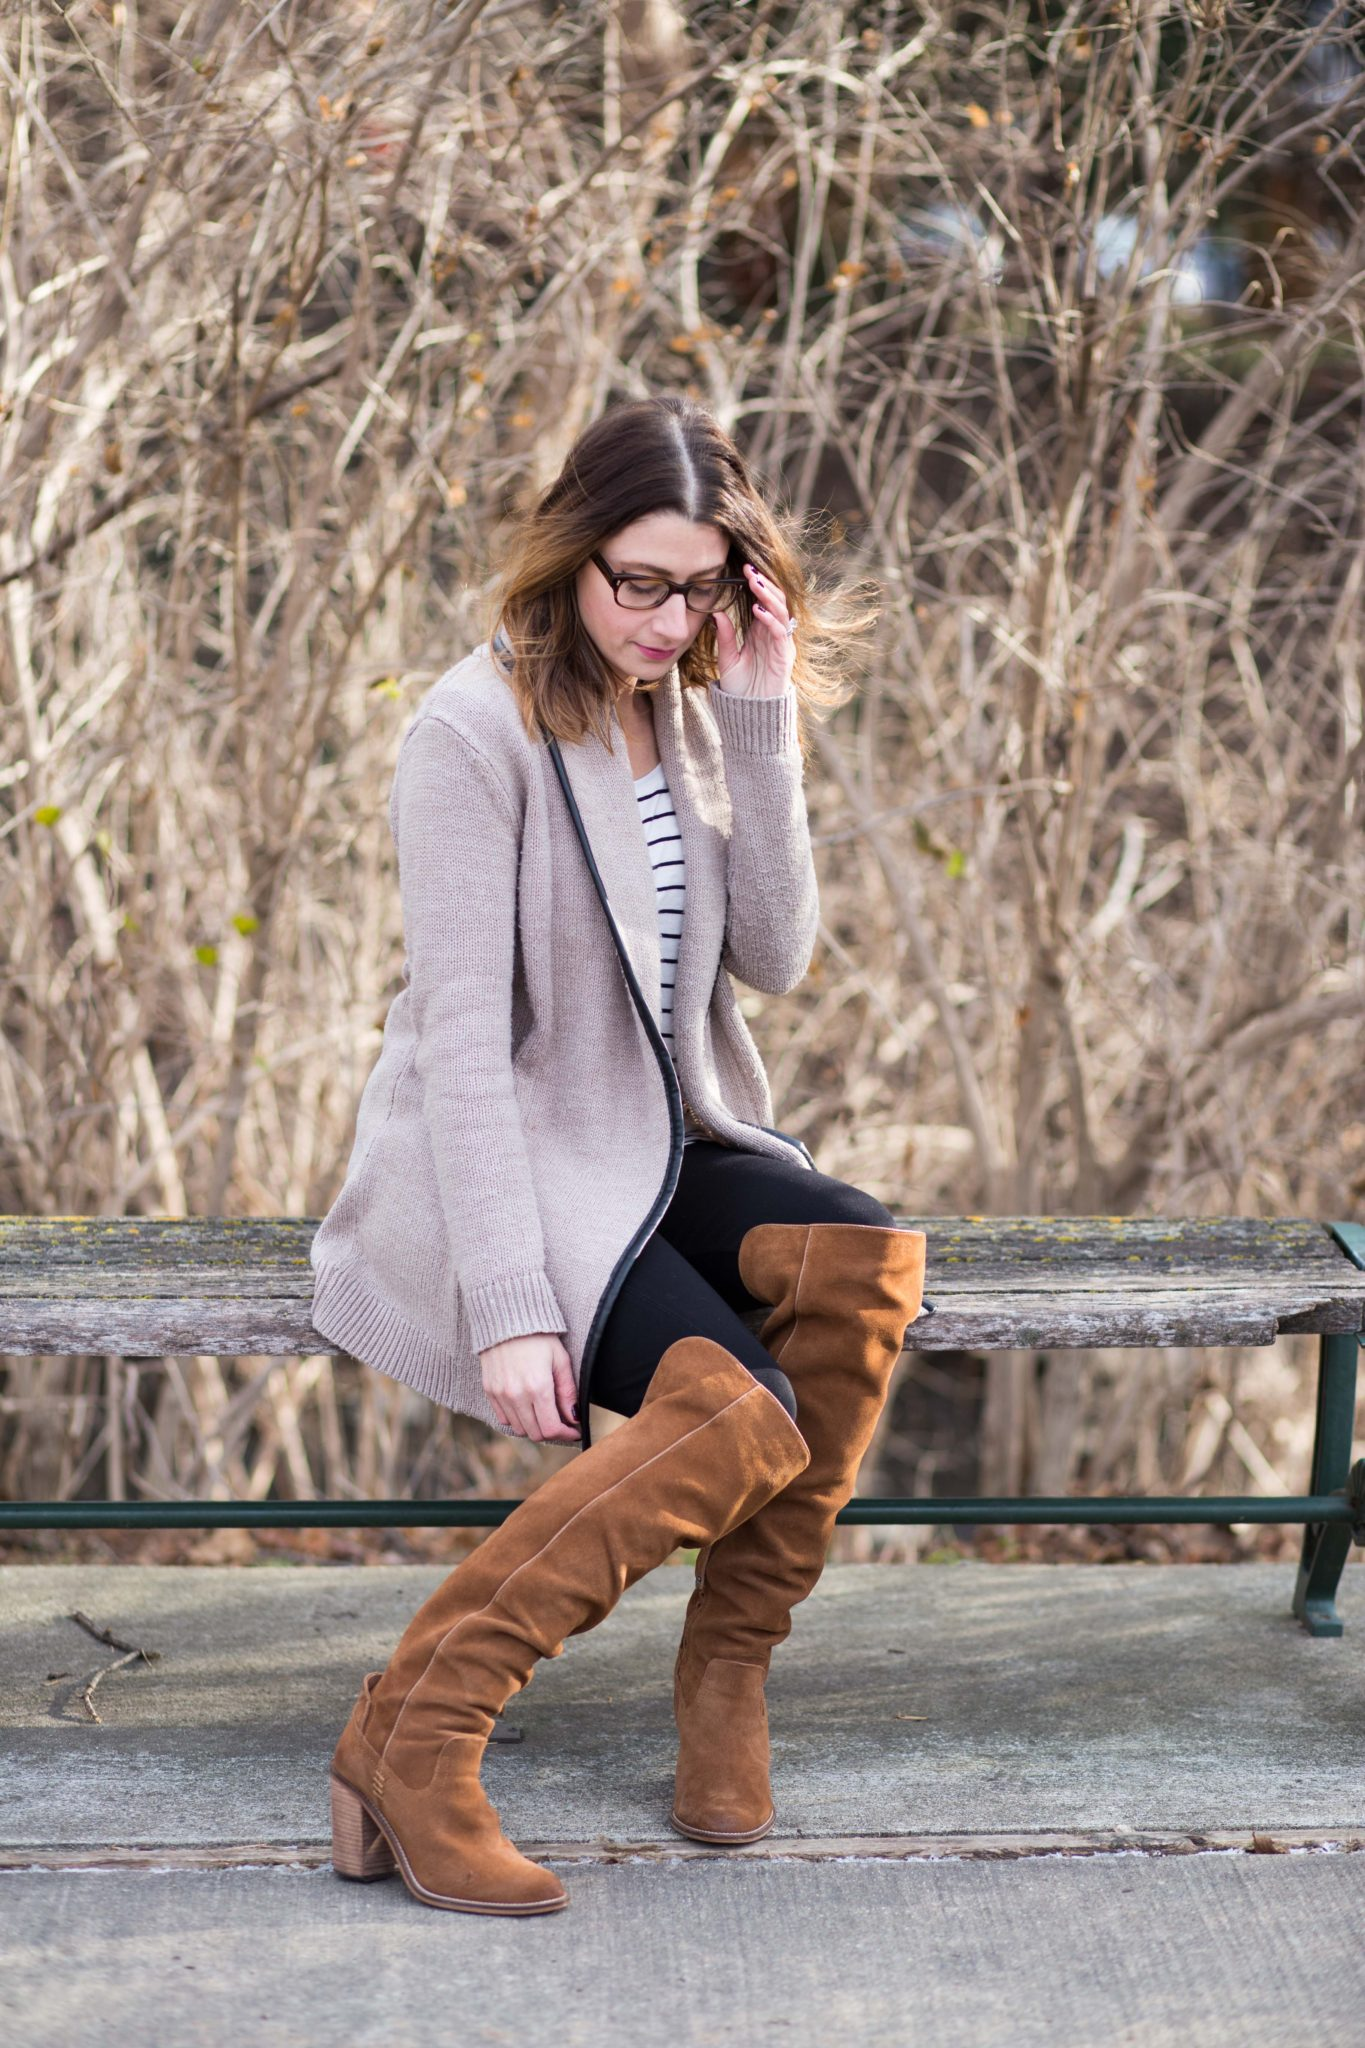 over the knee boots | winter style | blog photography | cupcakes and cashmere | allweareblog.com